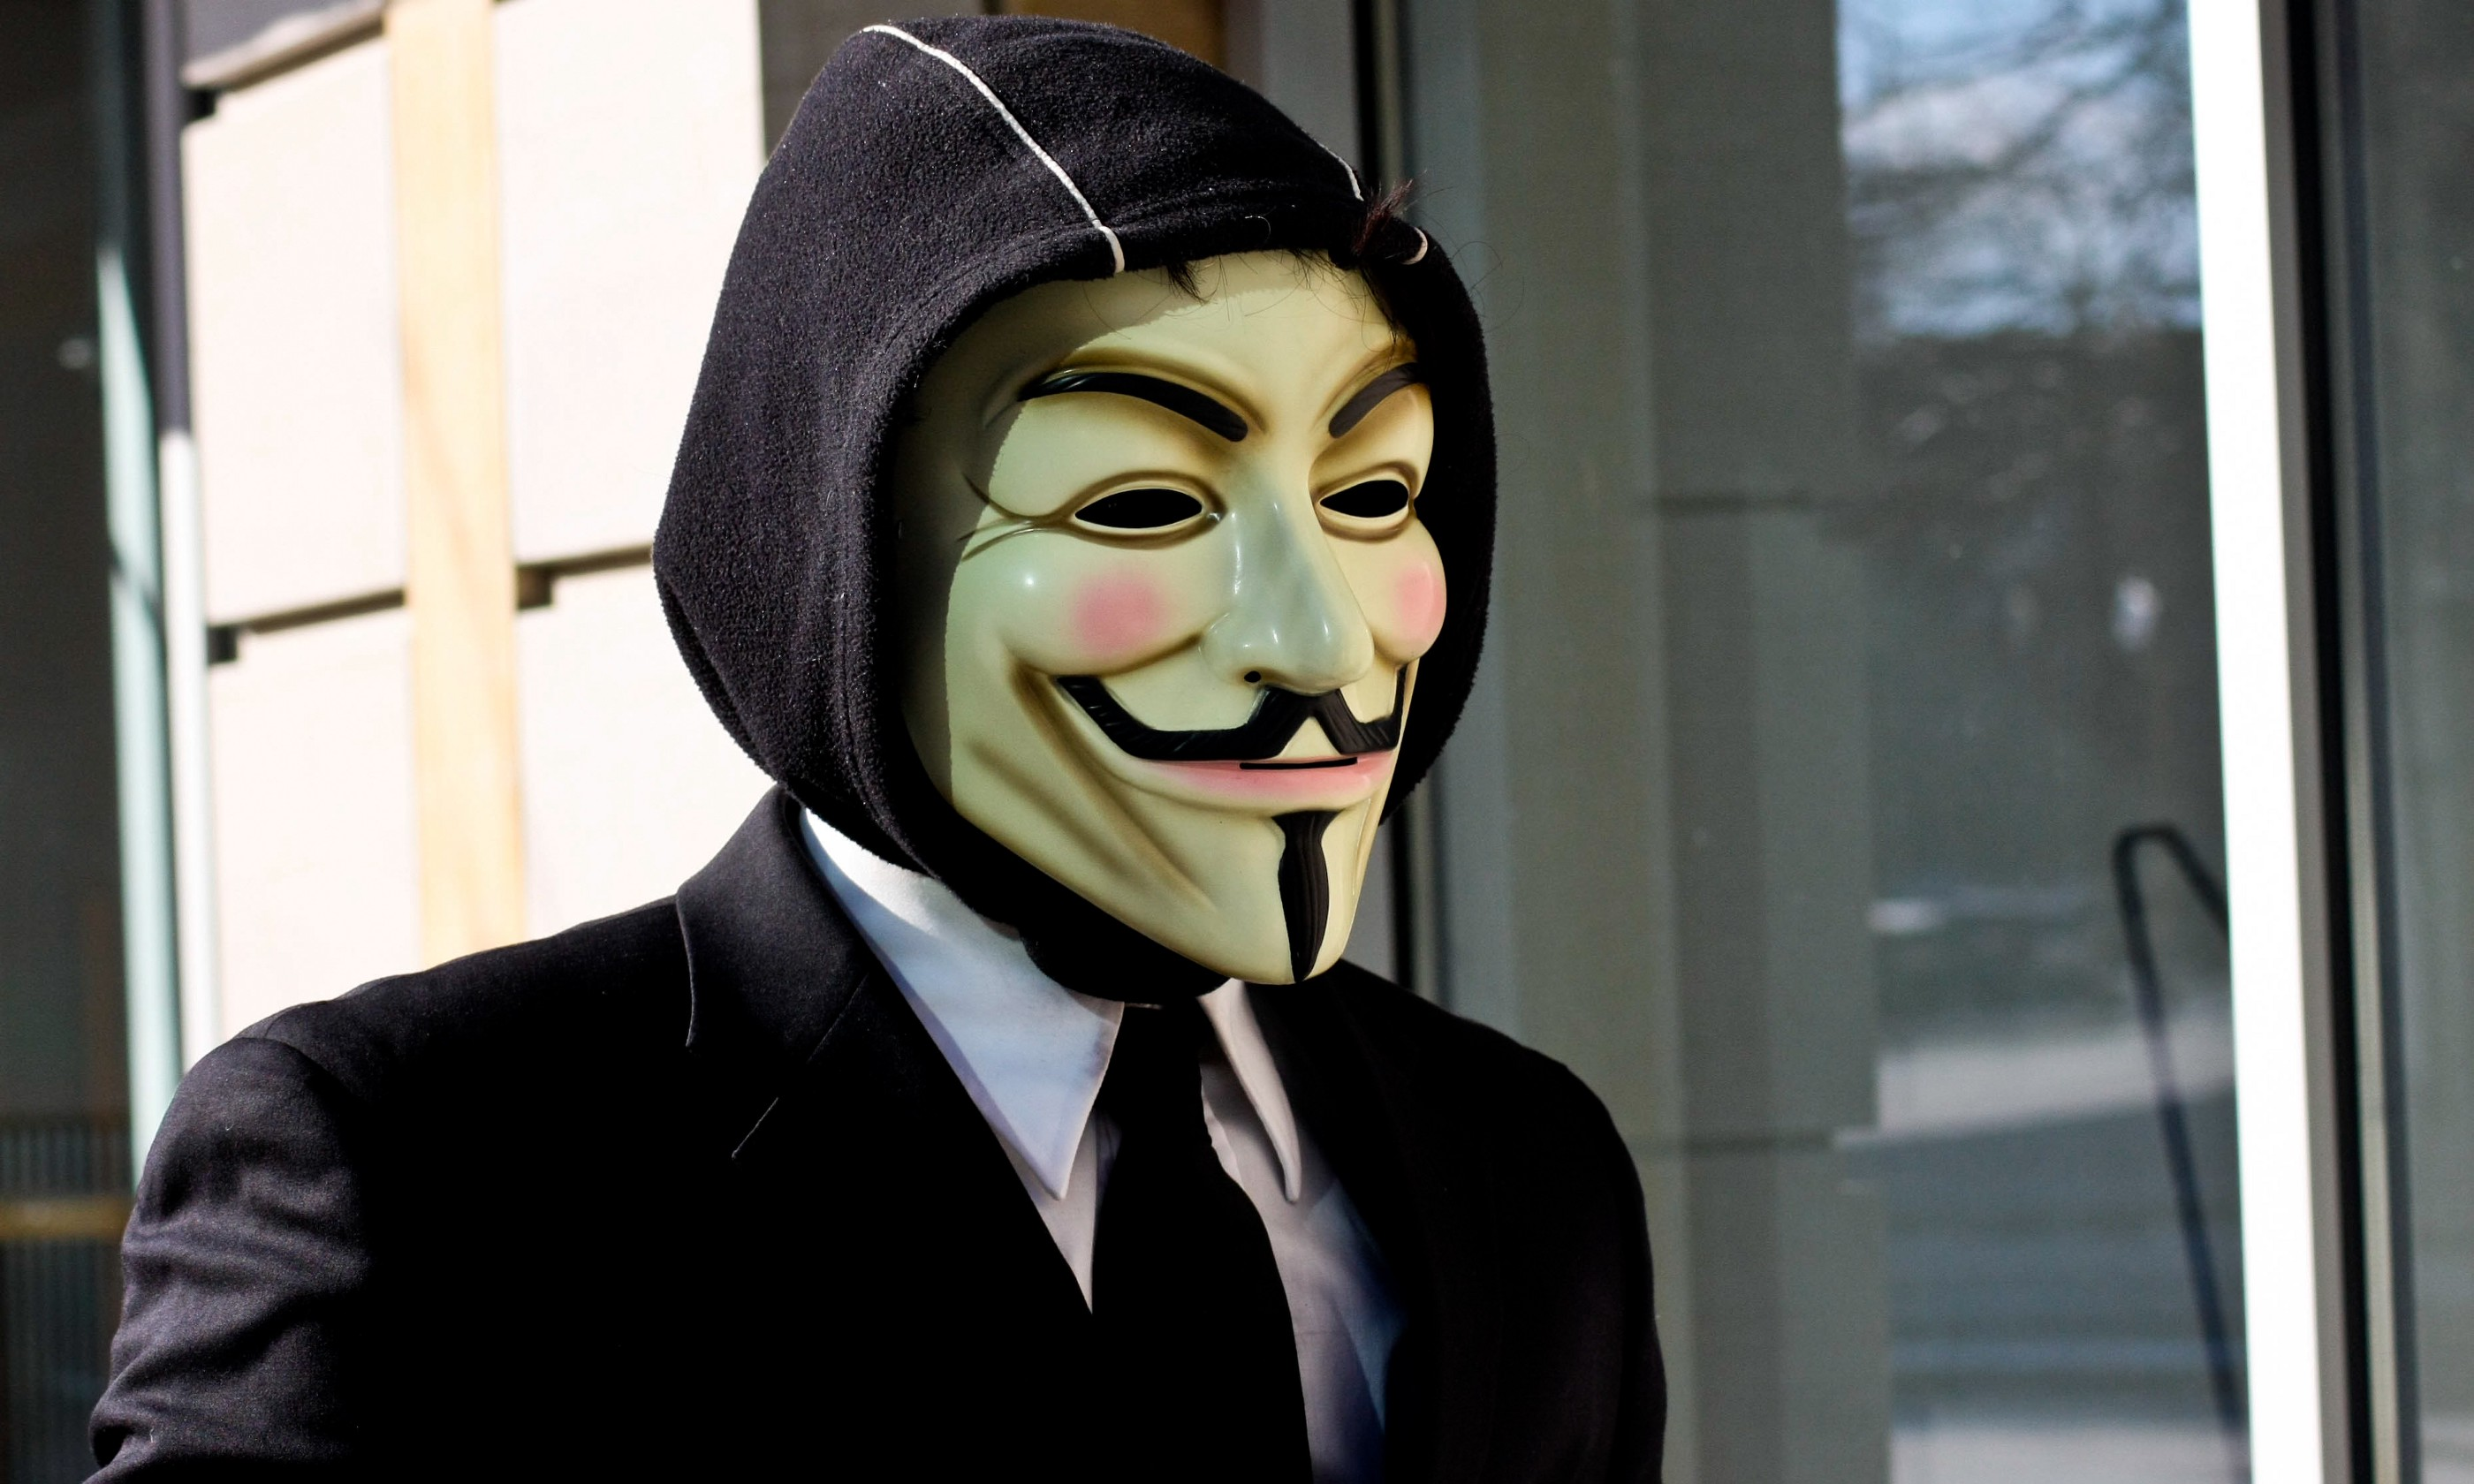 How To Be Anonymous Online. It's Time To Take Back Our Control on… | by Zen Chan | Medium